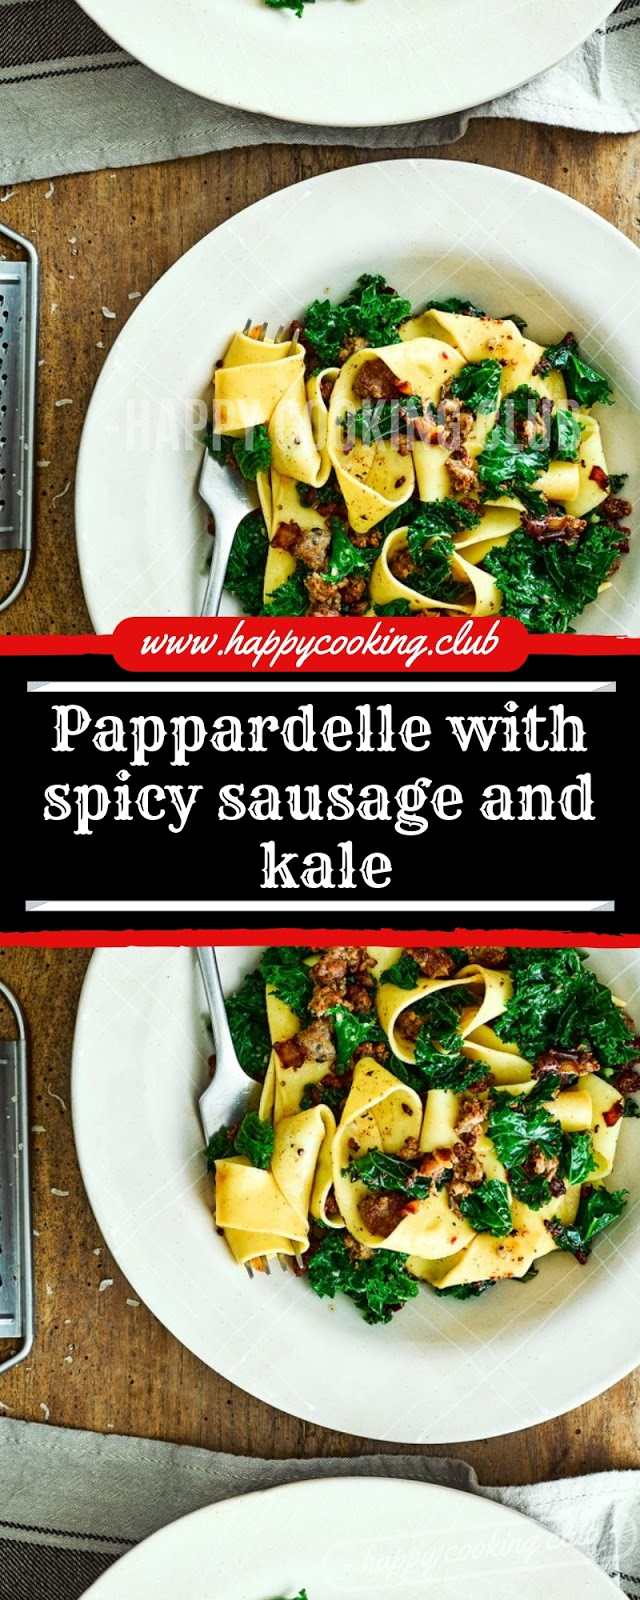 Pappardelle with spicy sausage and kale